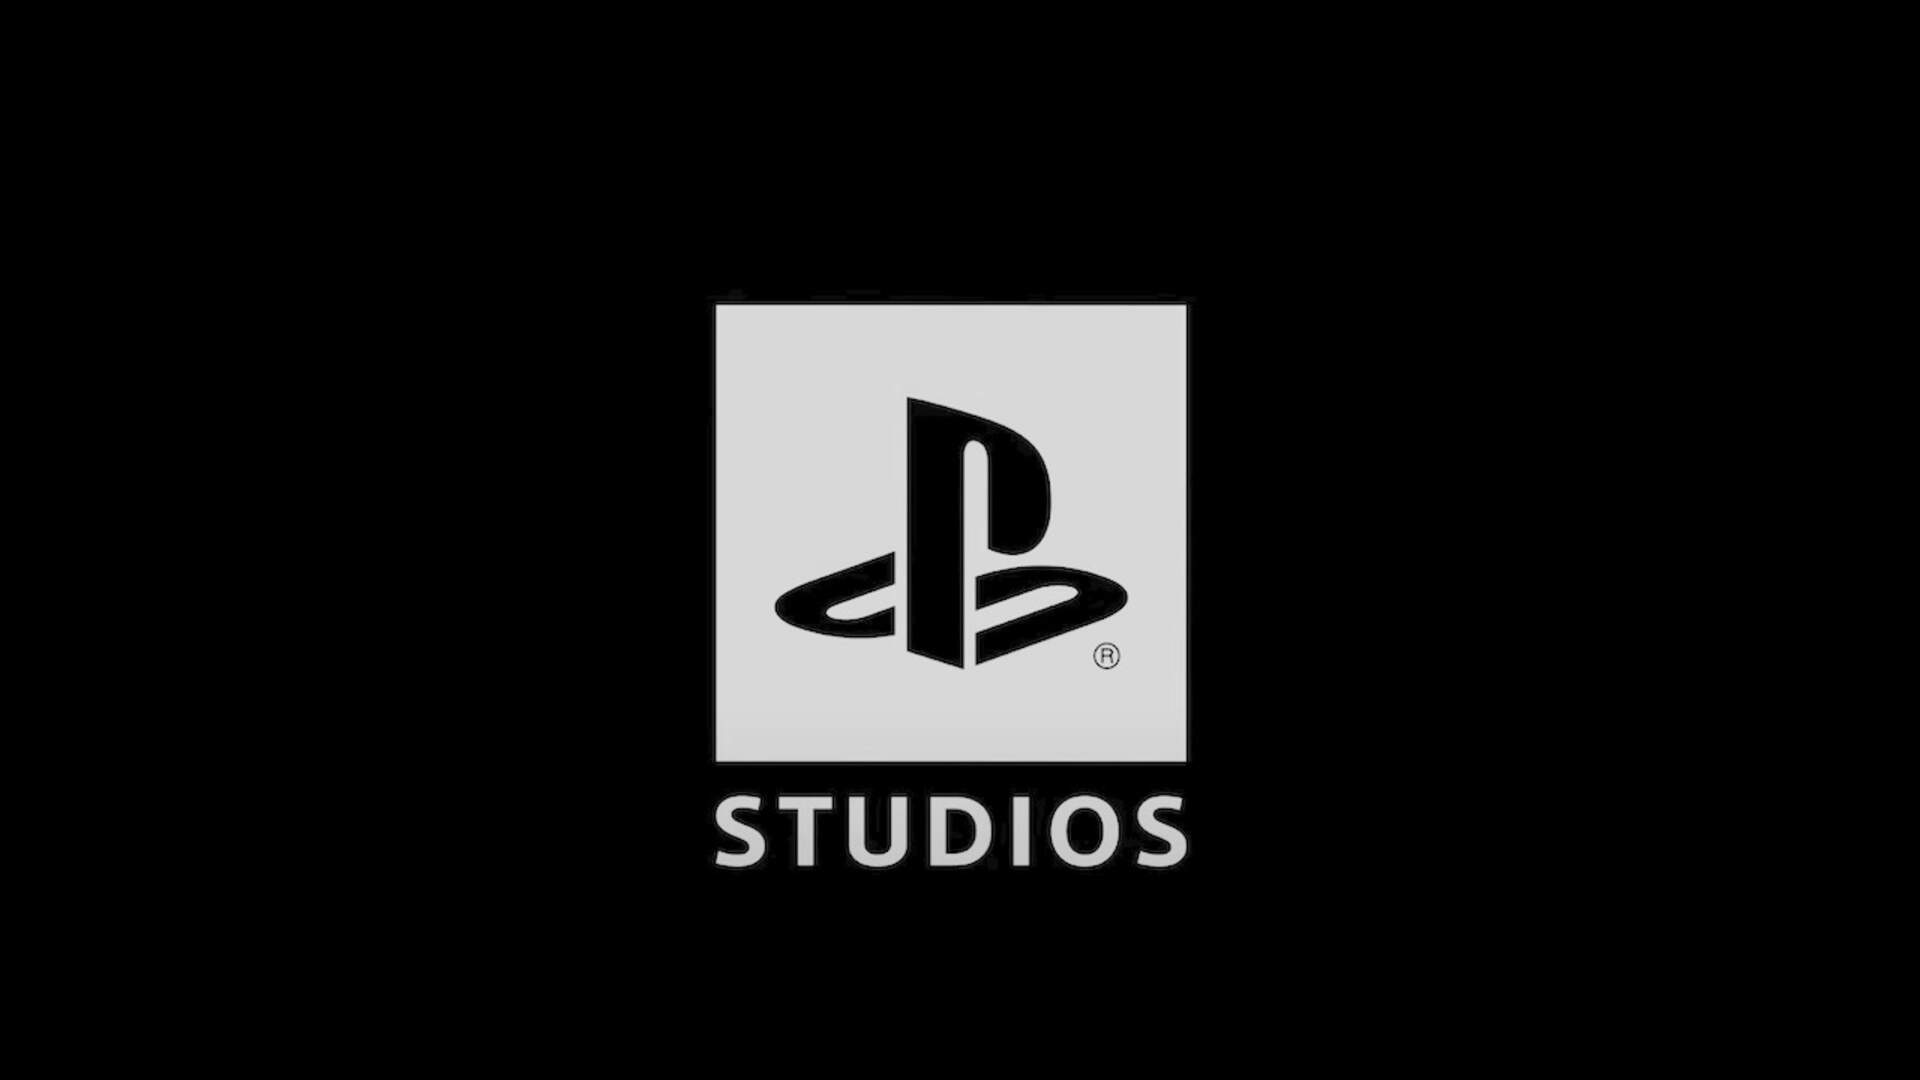 PlayStation Studios' New Cinematic Opening for First-Party Games Has Some Marvel Vibes